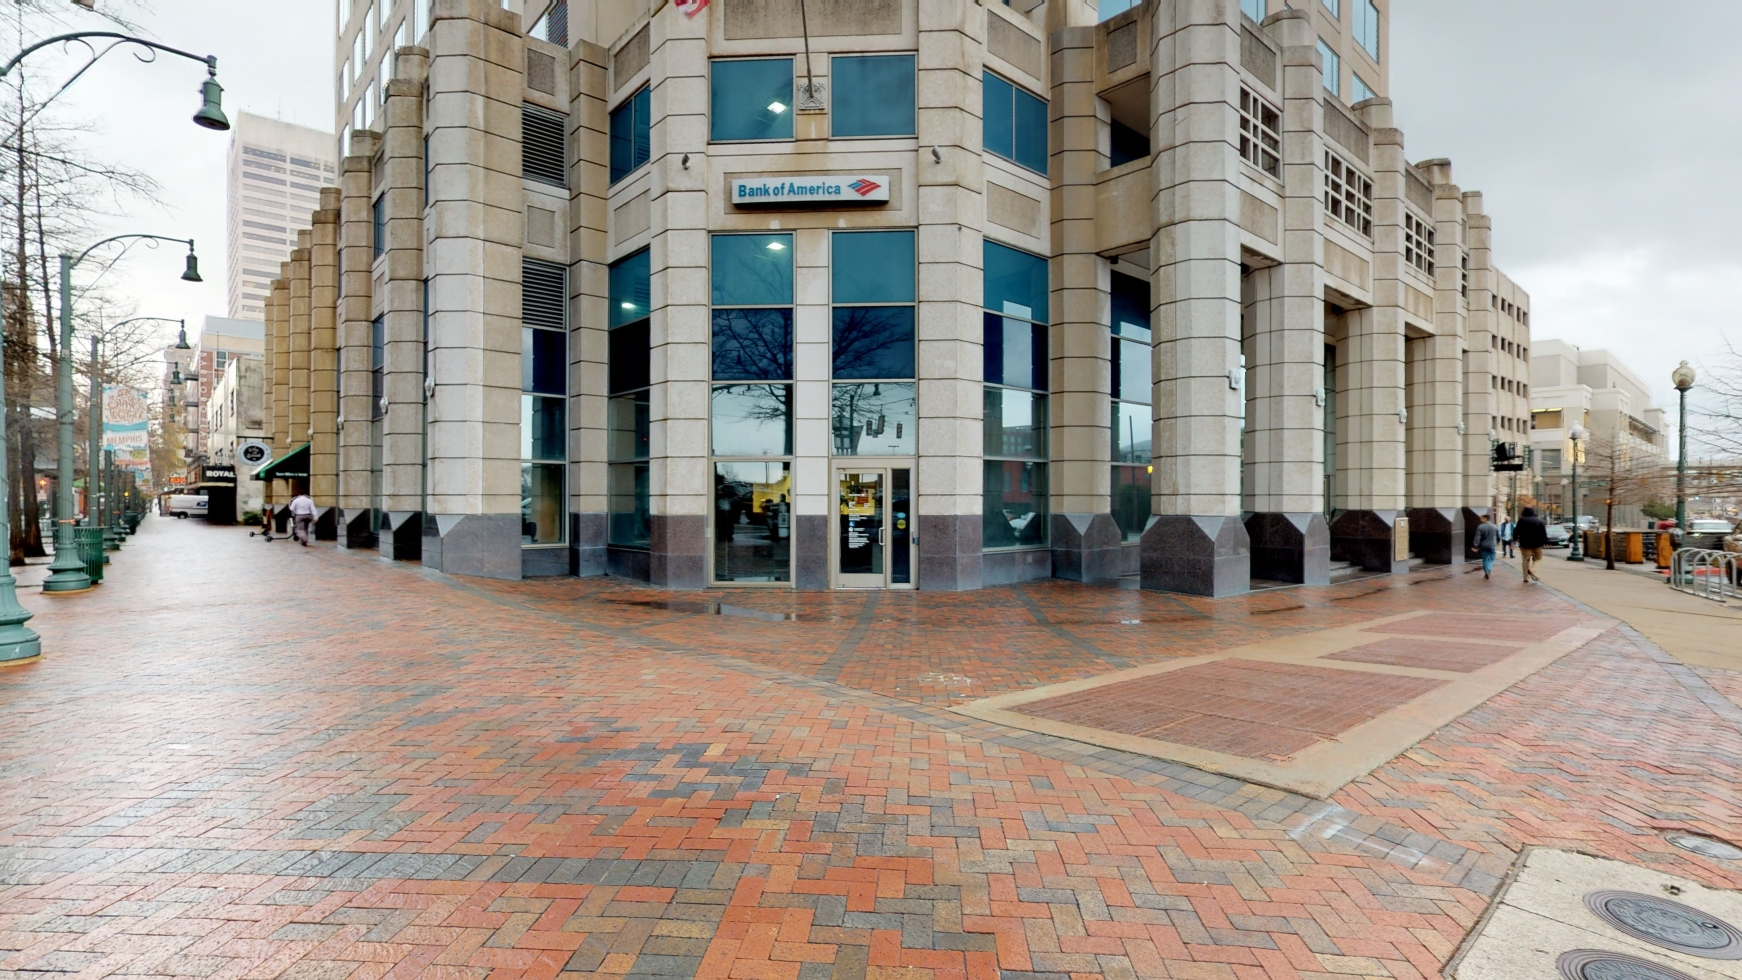 Bank of America financial center with walk-up ATM | 100 Peabody Pl, Memphis, TN 38103